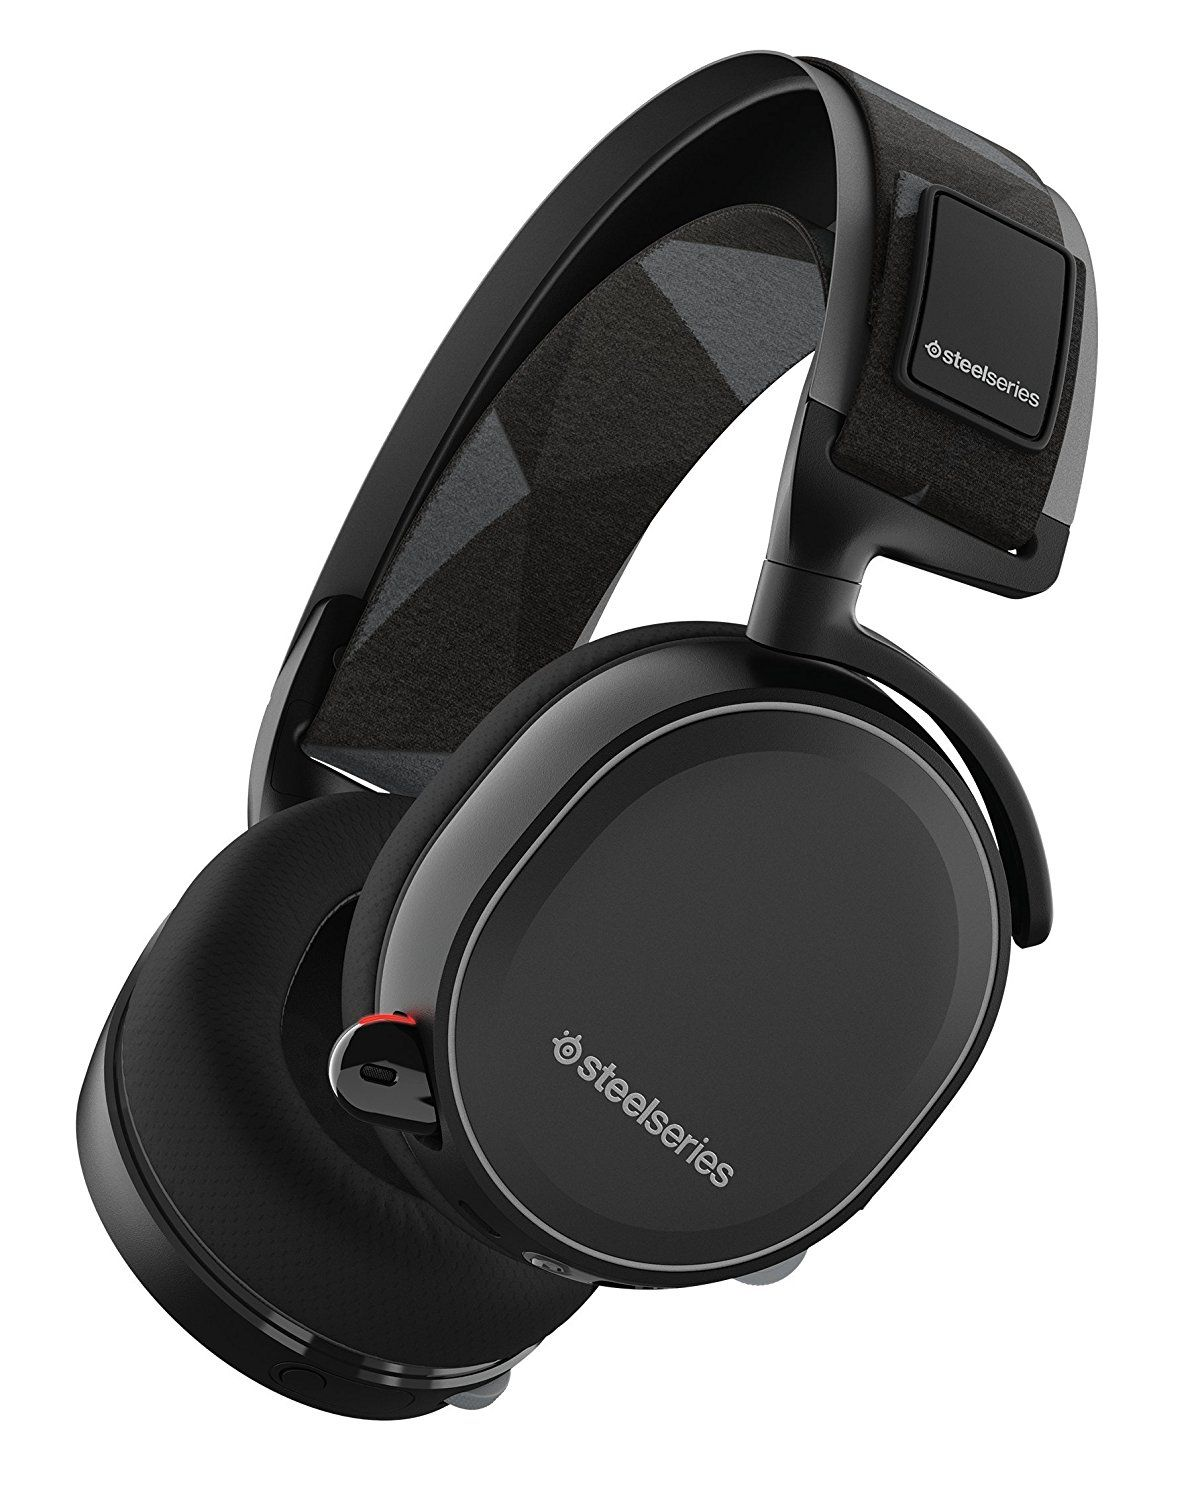 The SteelSeries Arctis 7 headphone is a standard wireless gaming headset  known to be versatile d4537adb8011